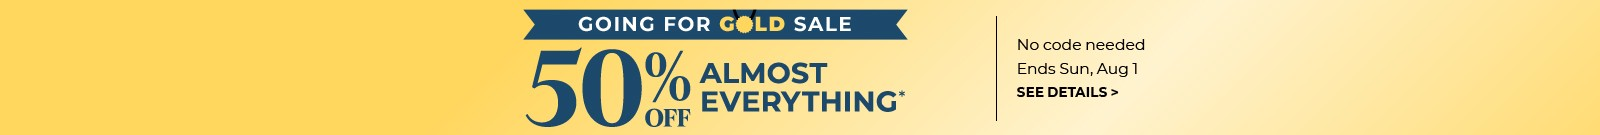 Going for Gold Sale, 50% off almost everything, no code needed, Ends Sun, Aug 1